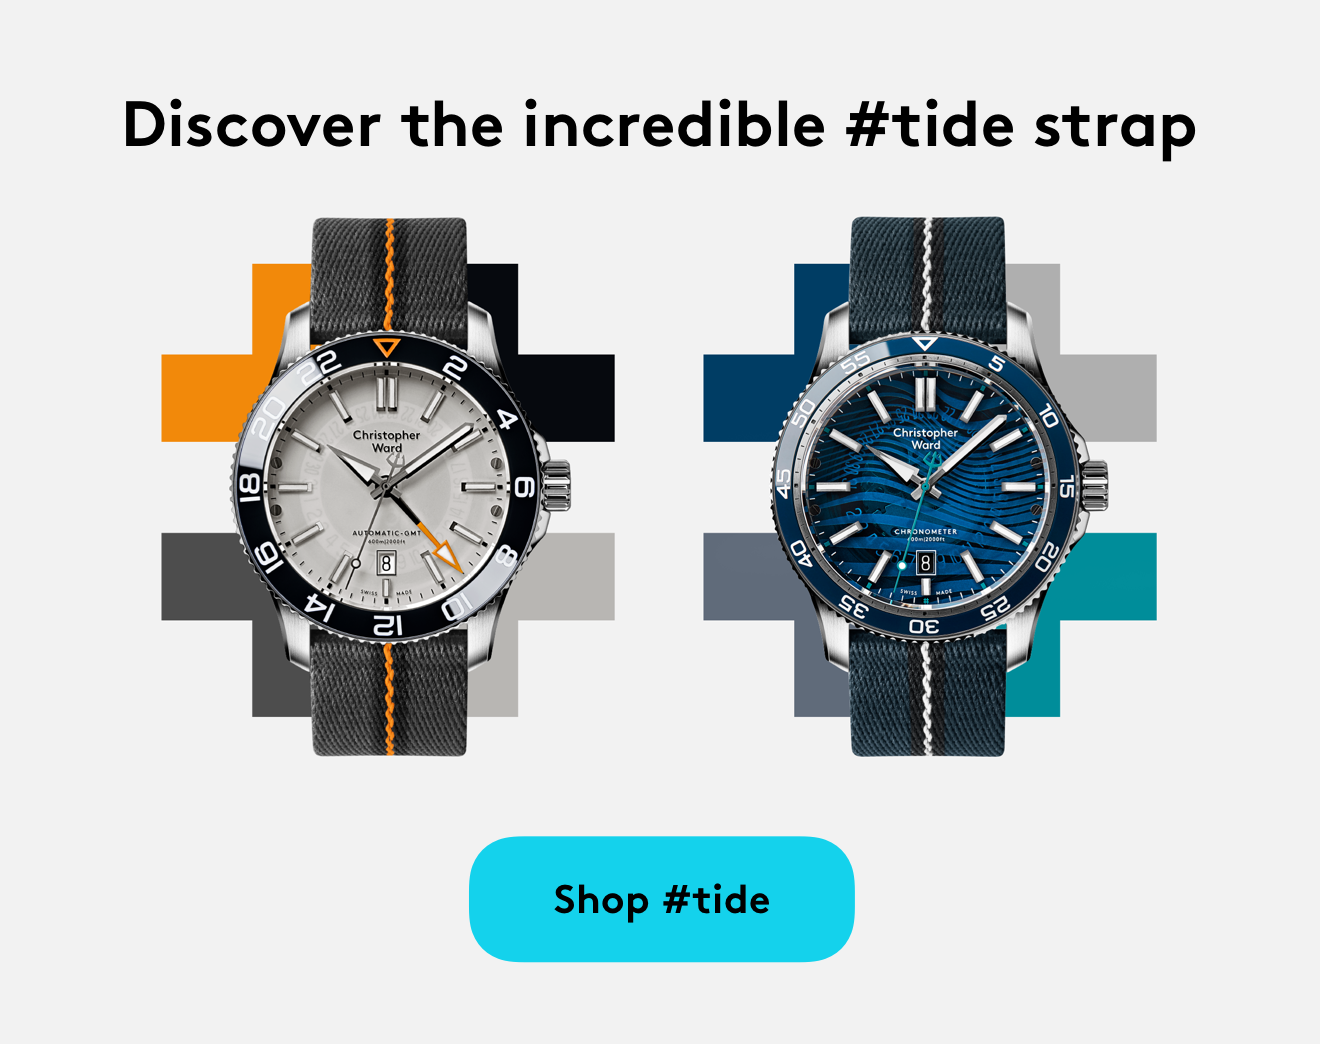 Discover the incredible #tide strap